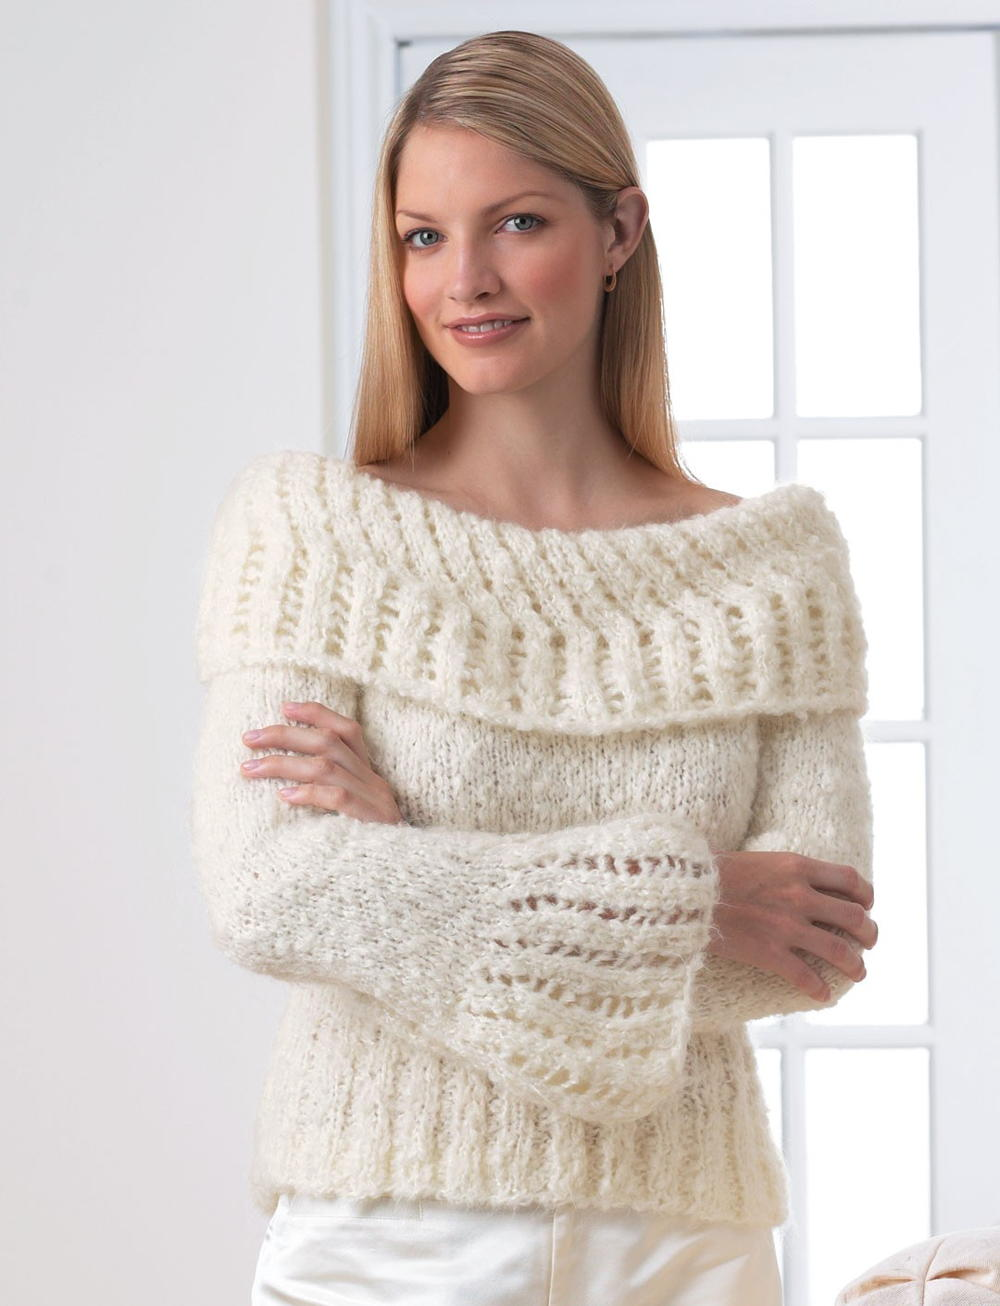 Knitting Patterns Sweater : Lacework sweater allfreeknitting